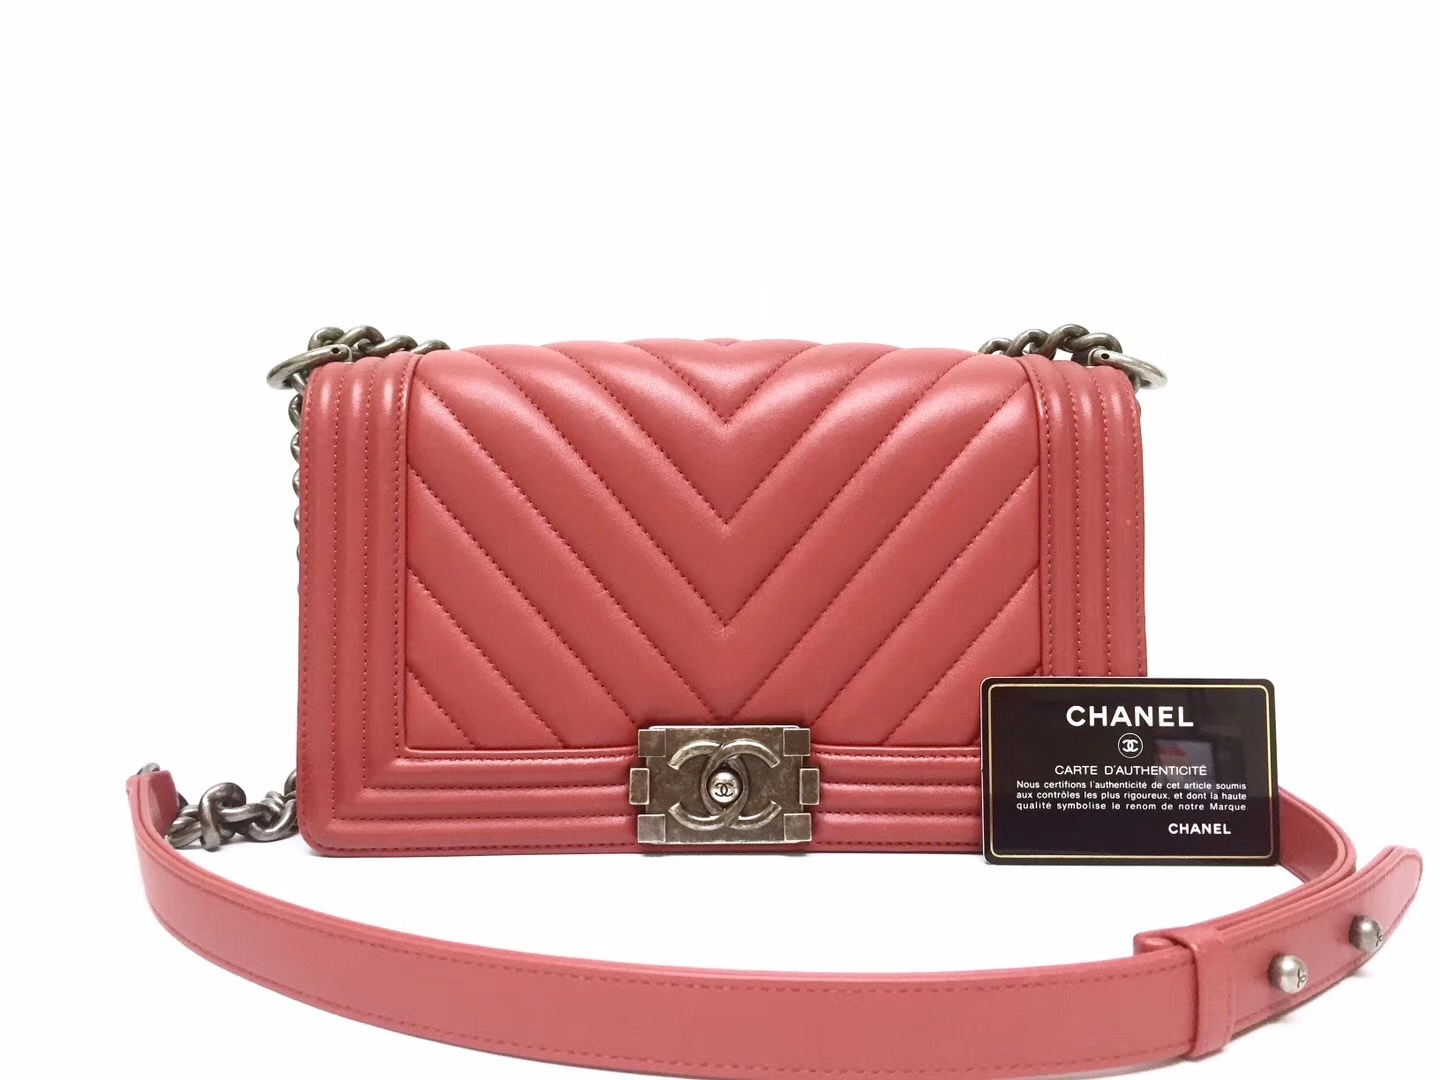 AUTHENTIC CHANEL 2018/2019 RED CHEVRON QUILTED CAVIAR MEDIUM BOY FLAP BAG RHW